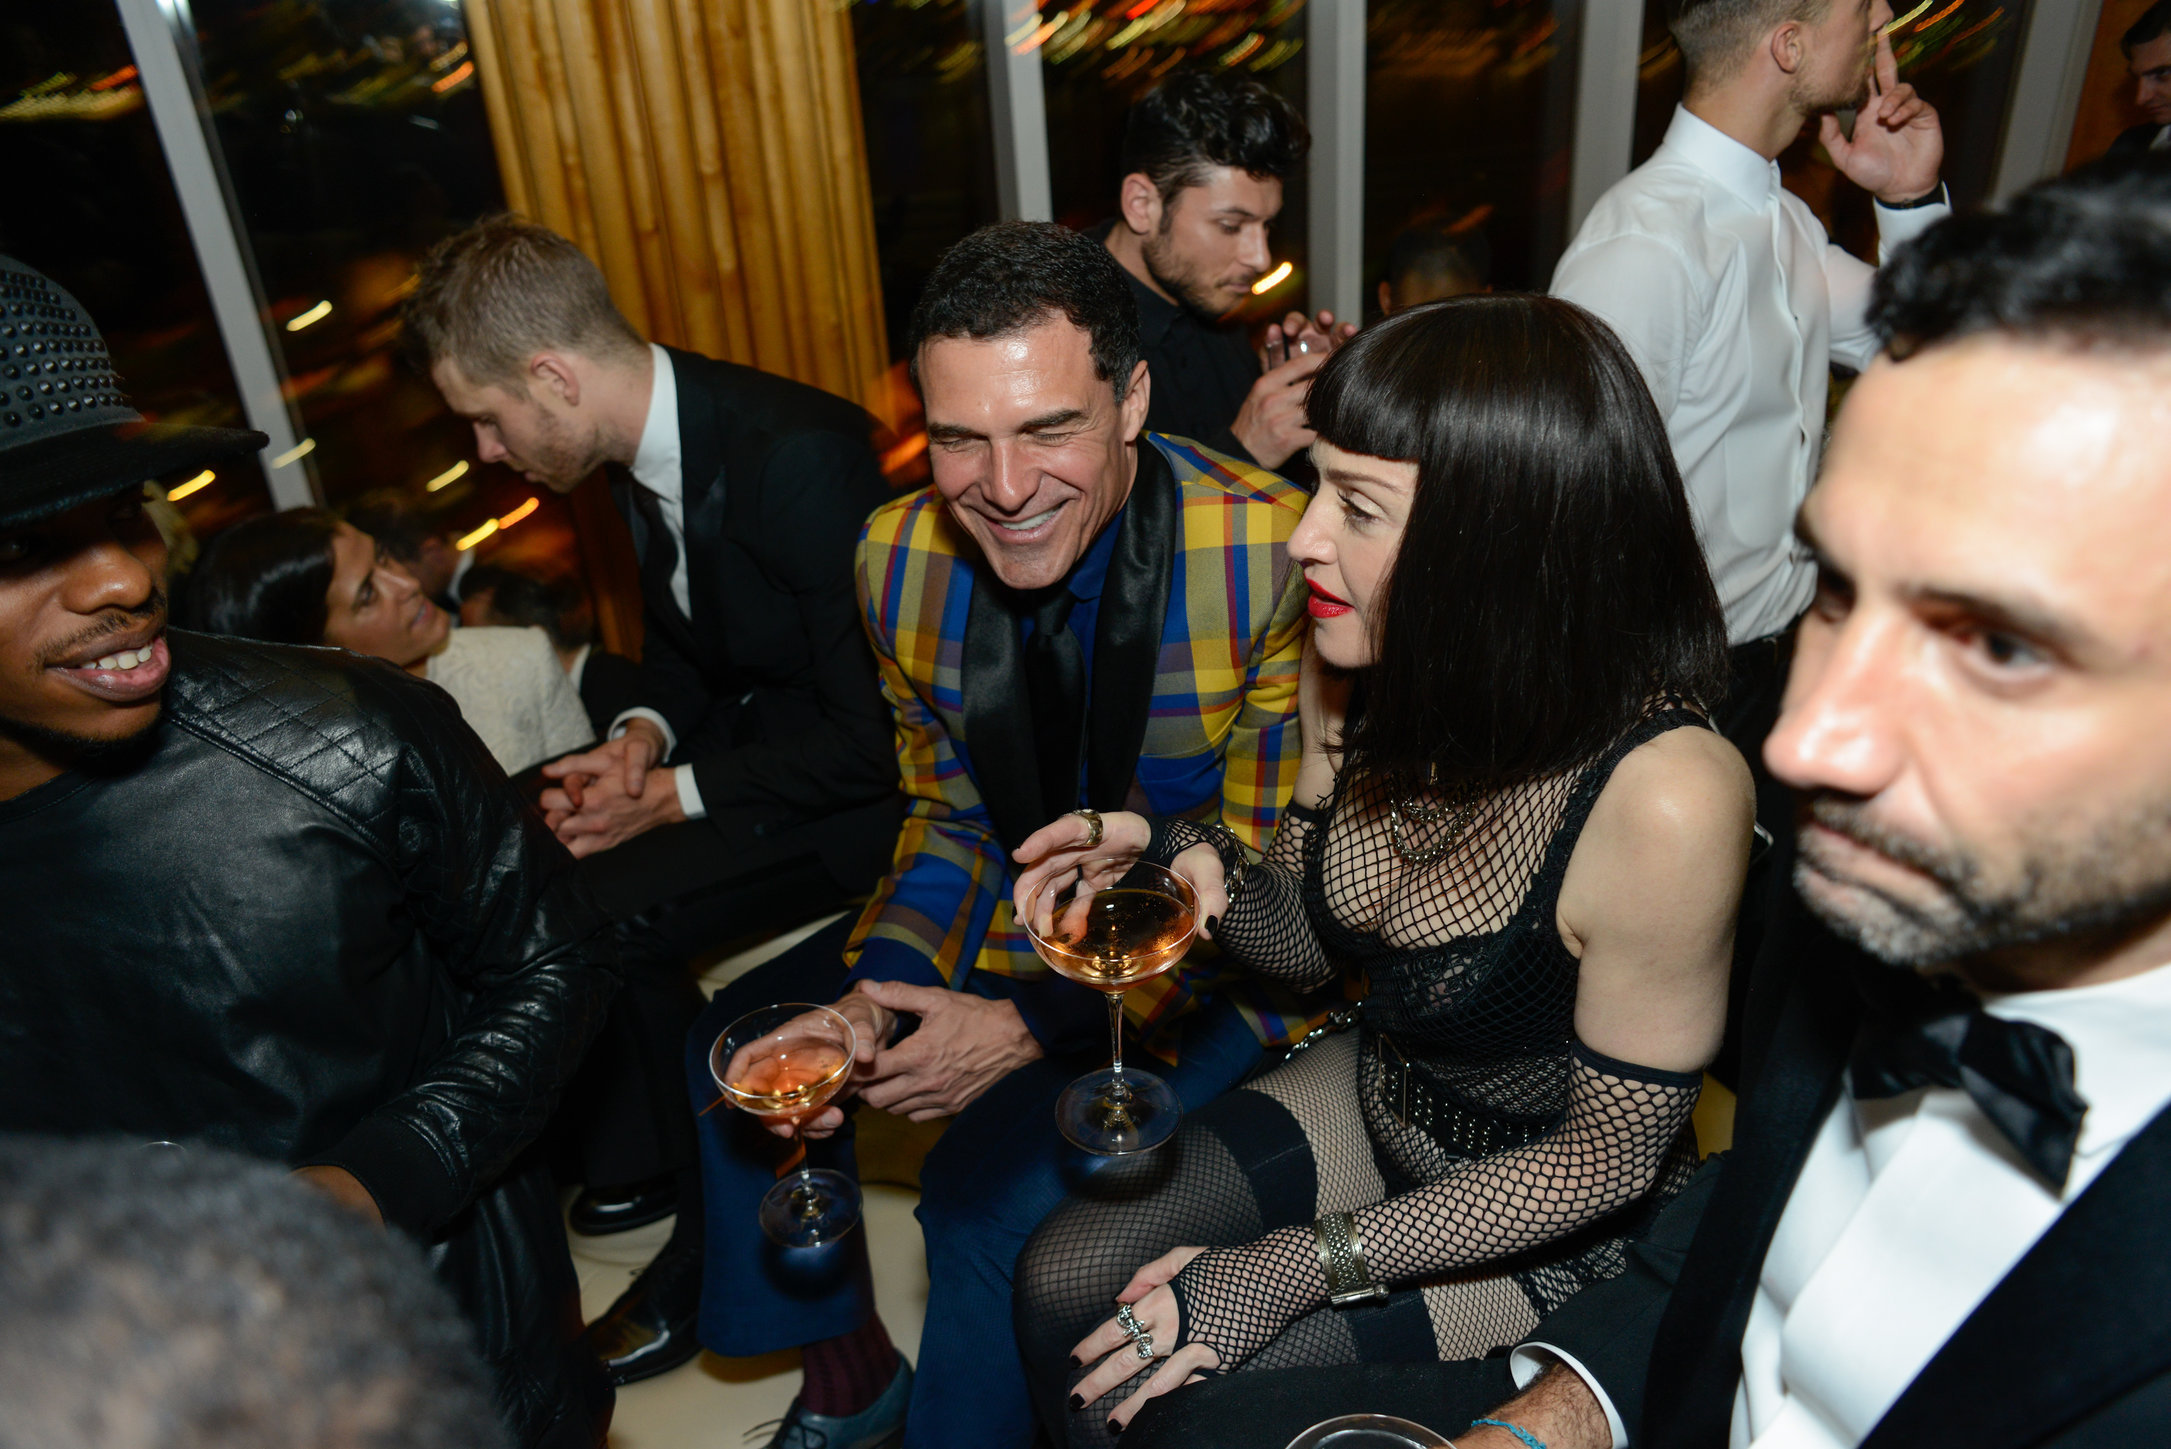 Met Gala Afterparty 2013-65.jpg